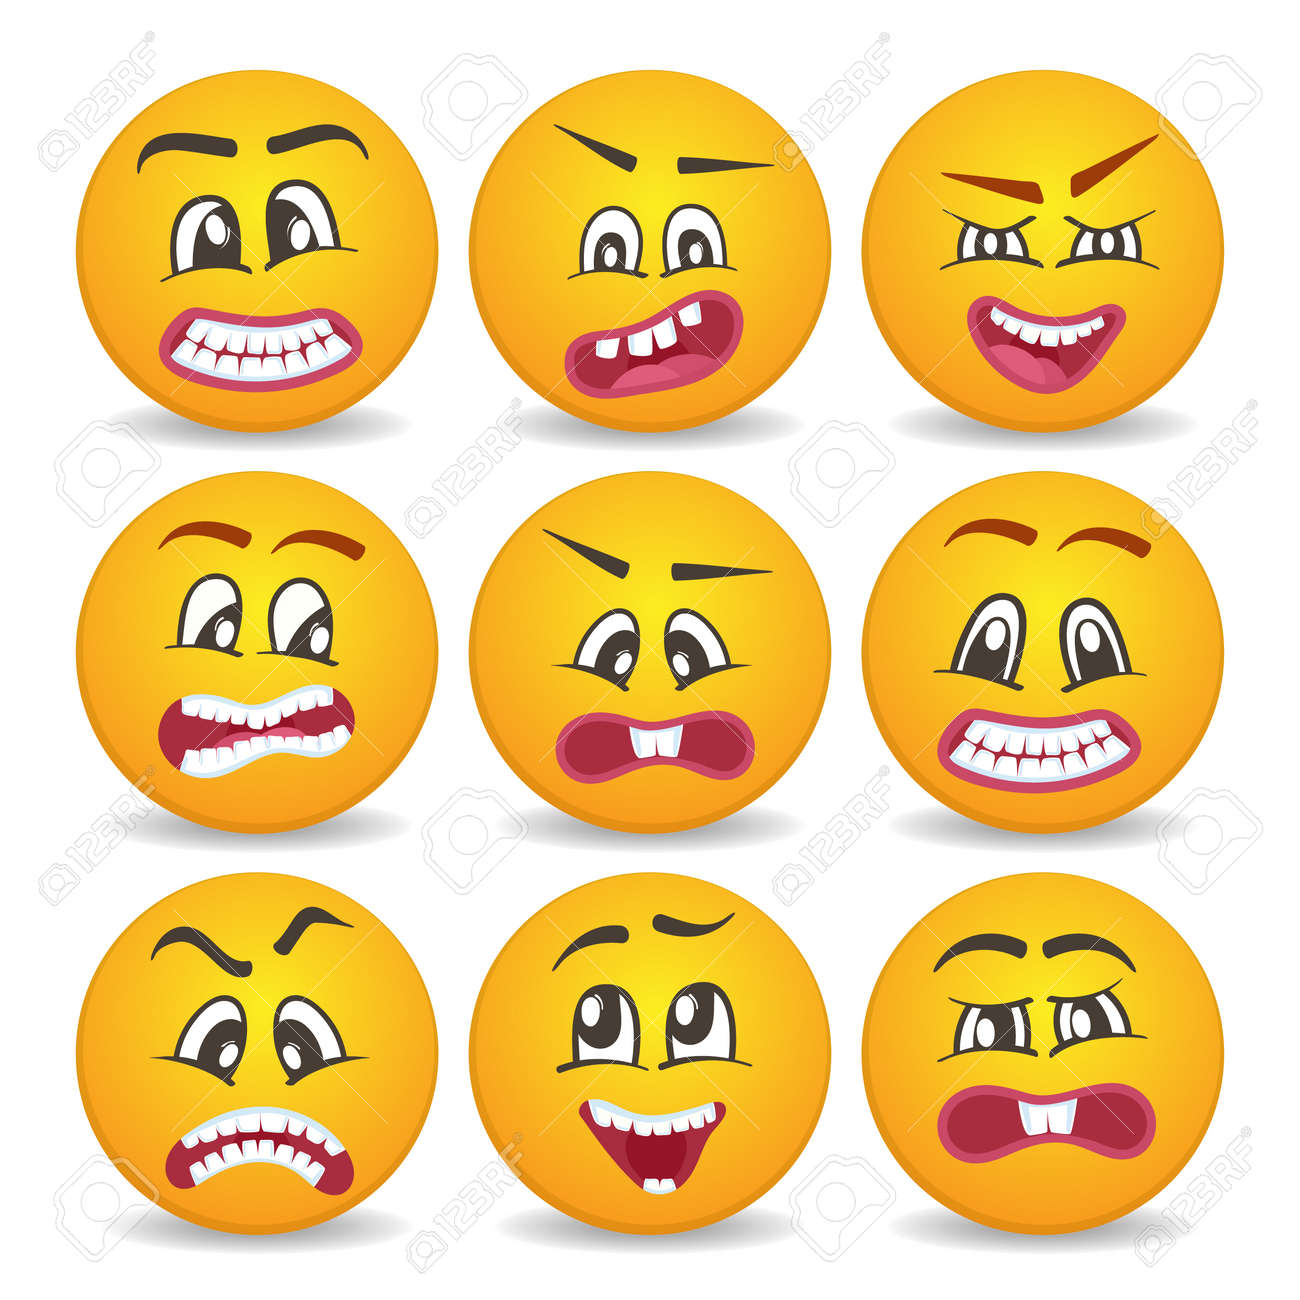 Cute Smiley Faces With Different Facial Expressions Set Emoticon